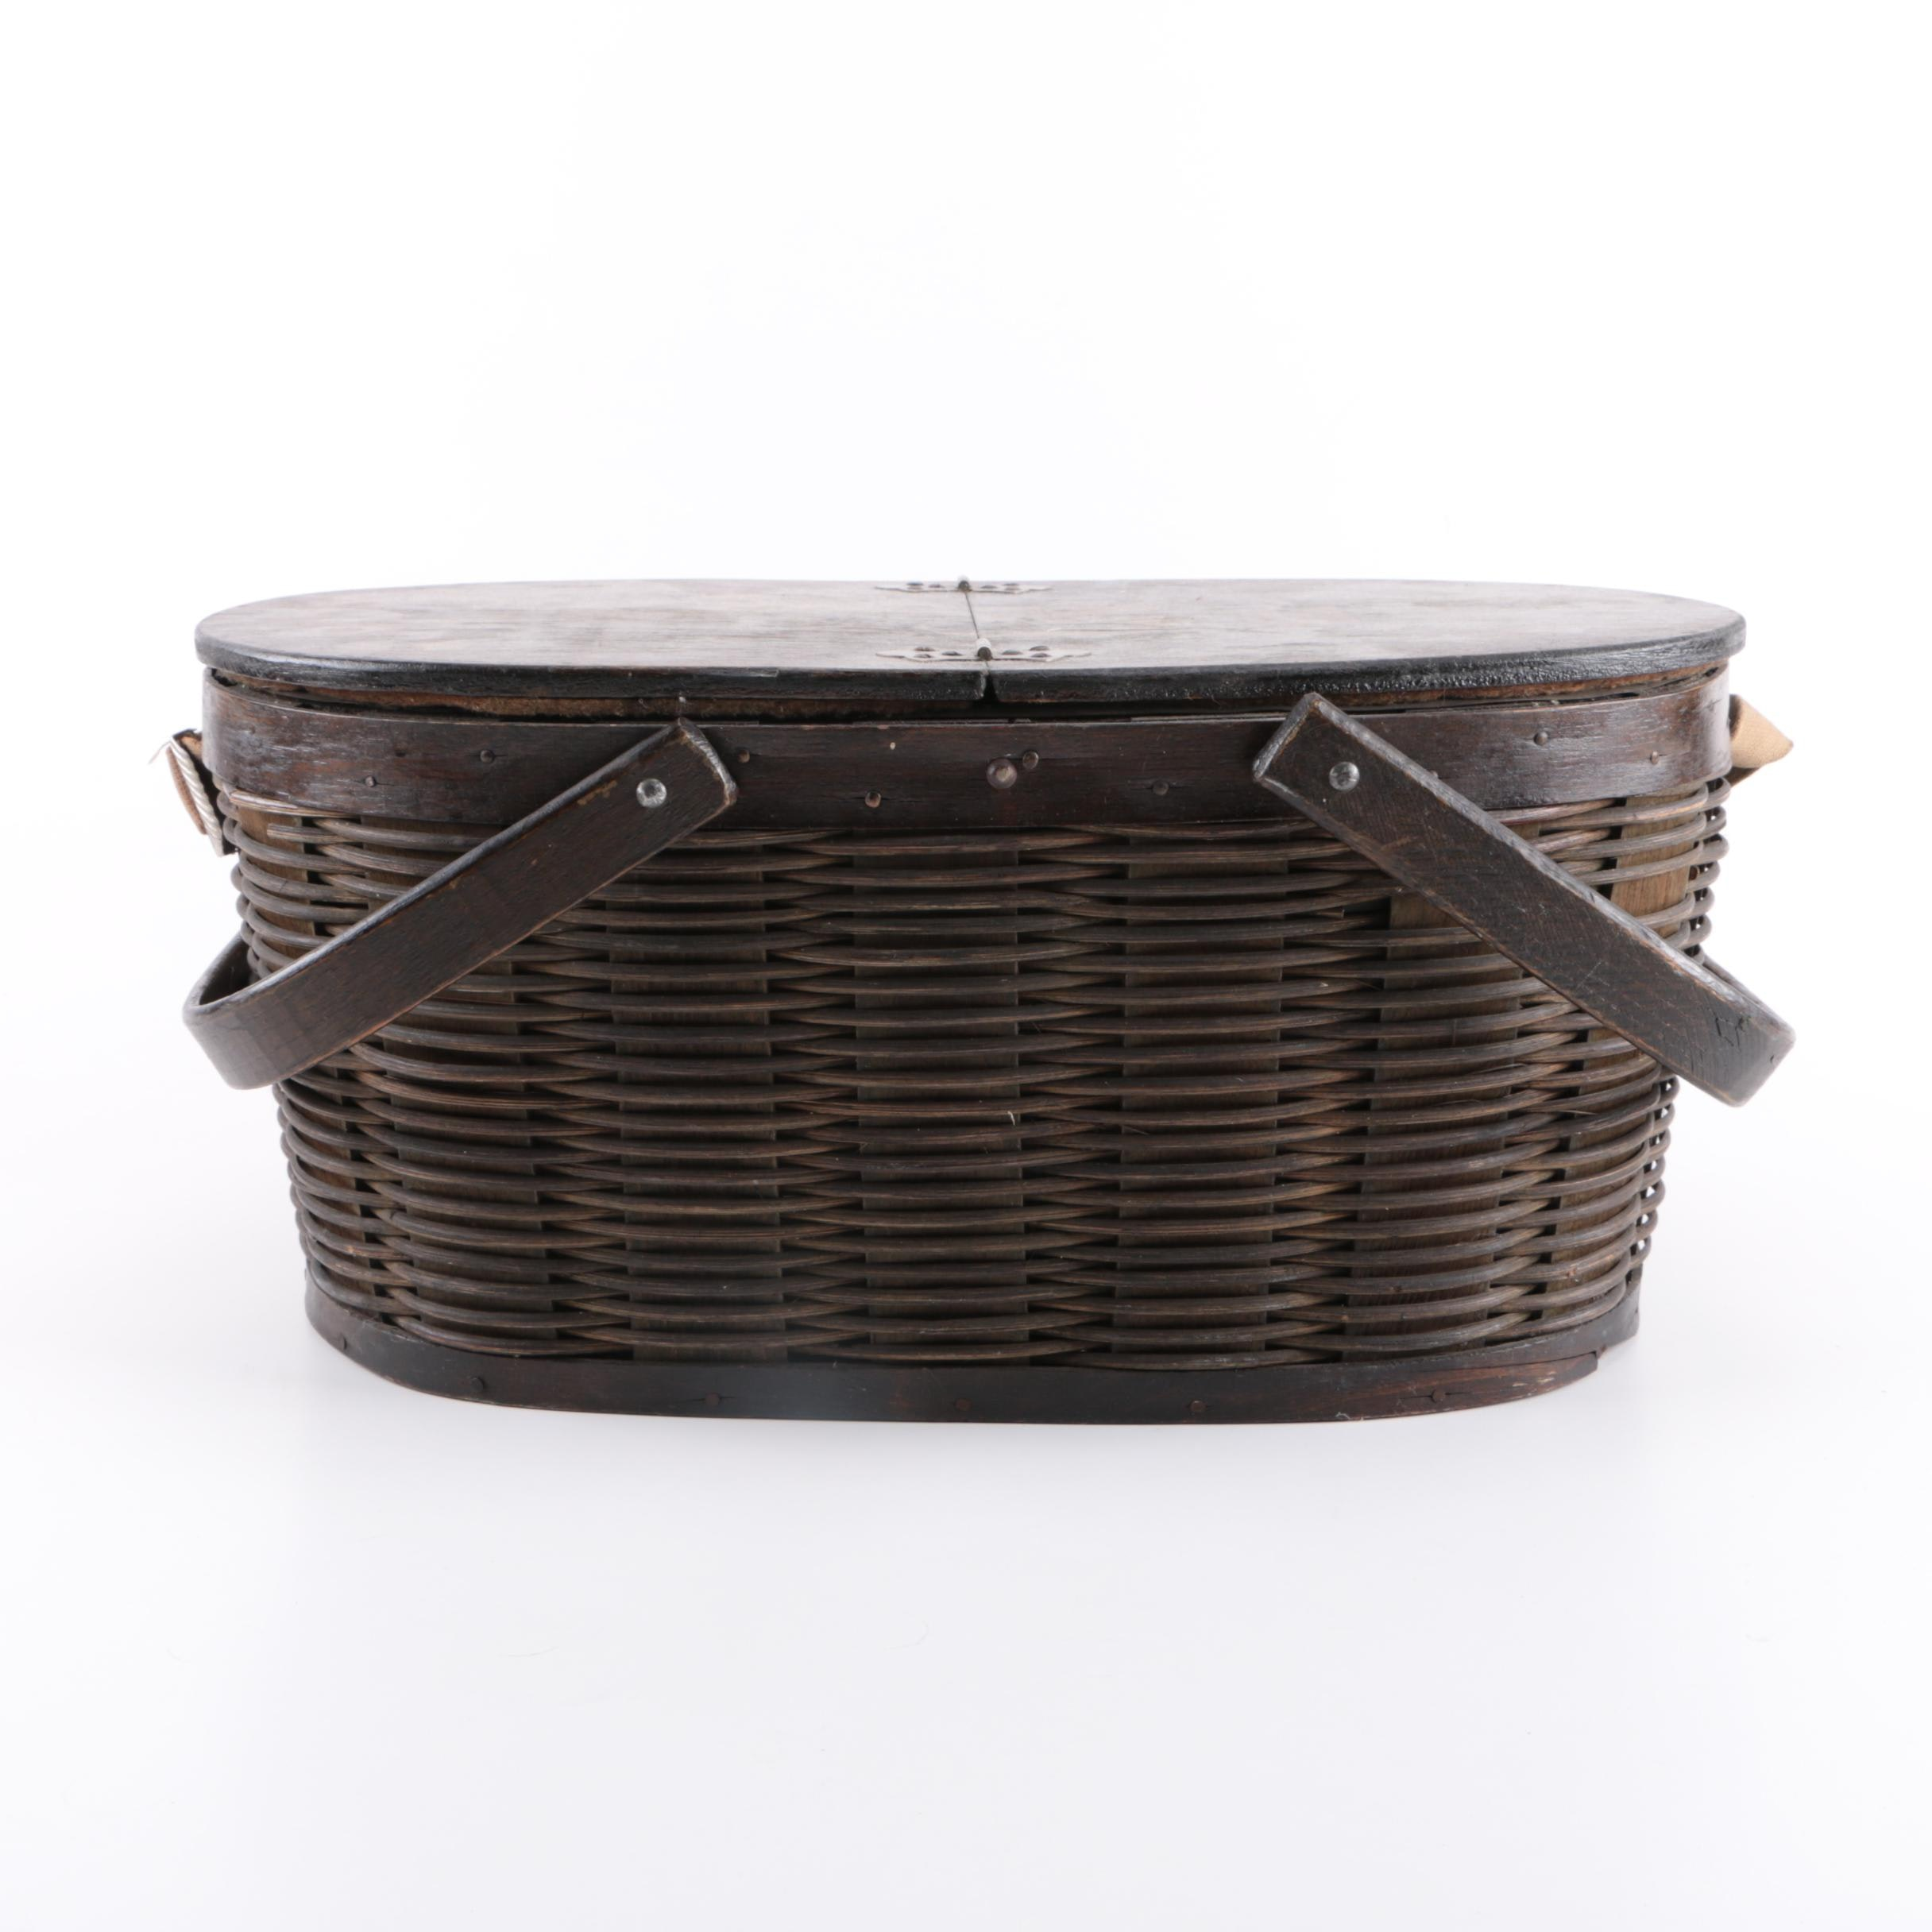 Antique Hawkeye Insulated Picnic Basket